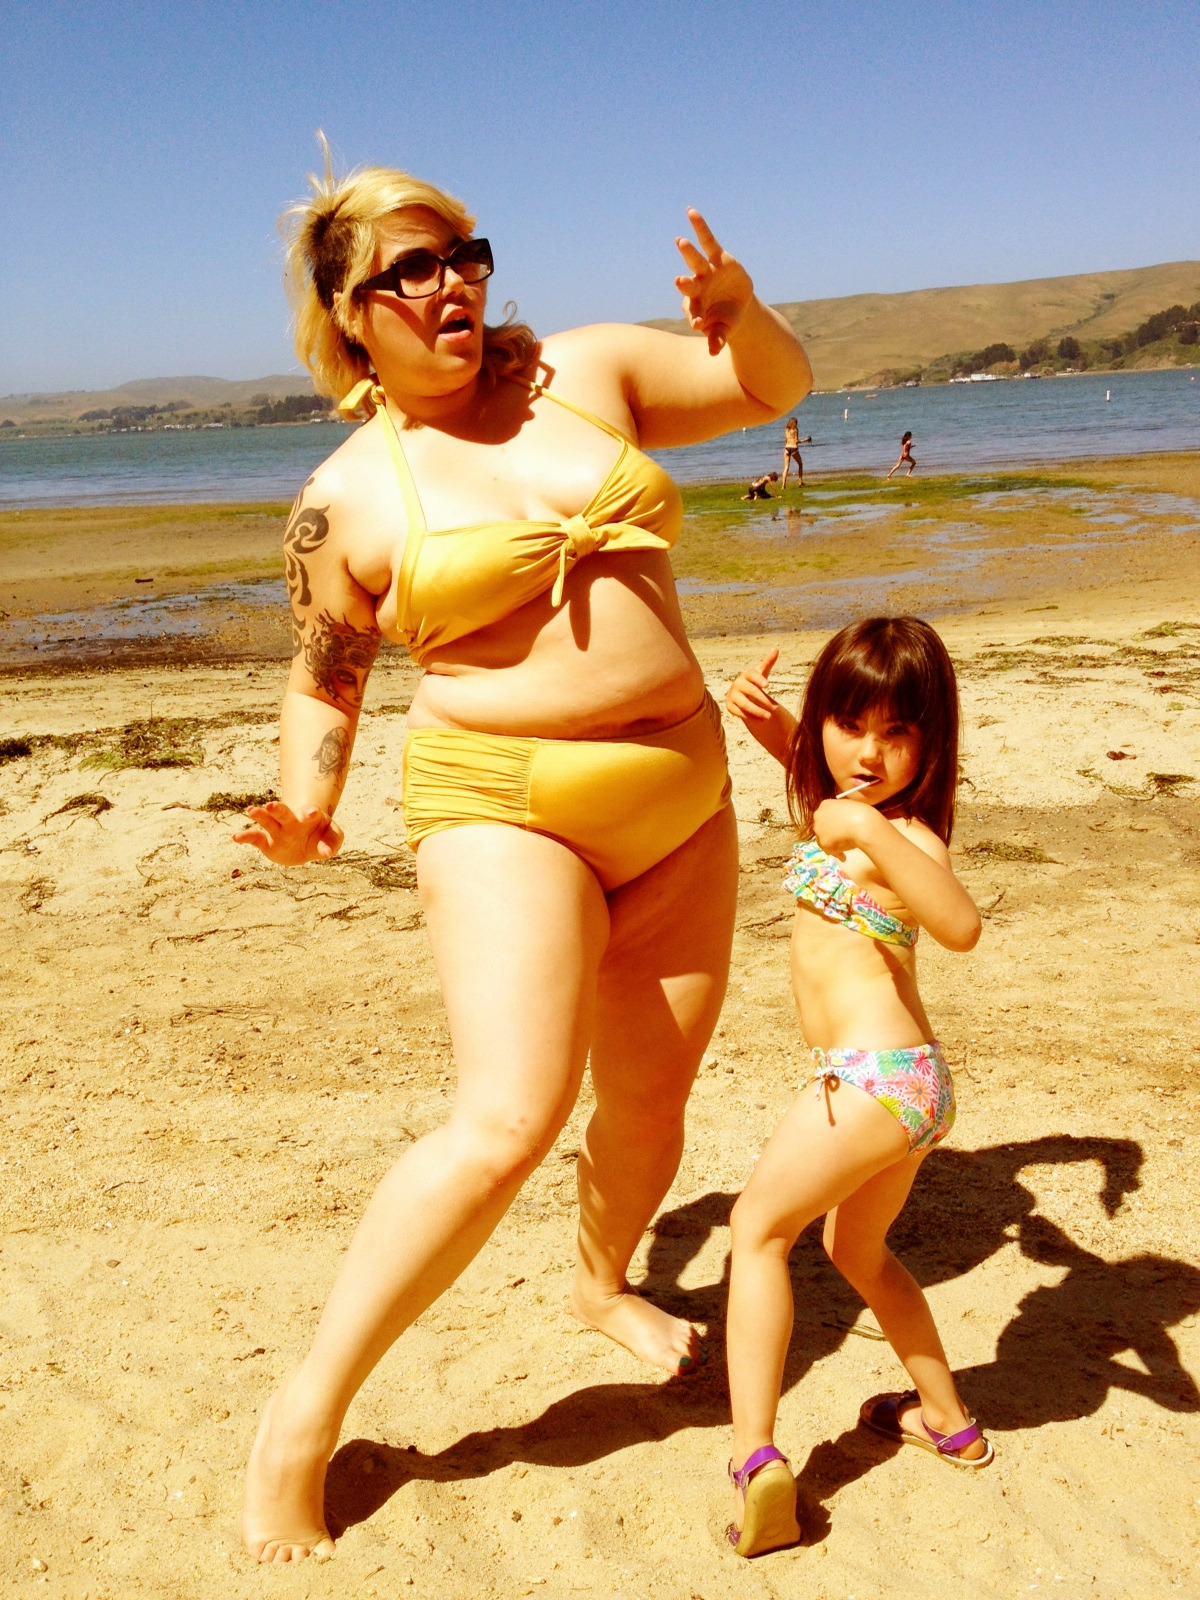 dirtynerdycurvy:  My daughter and I had a beach party. I played records and we did the twist in our bikinis.  Bellies are awesome!